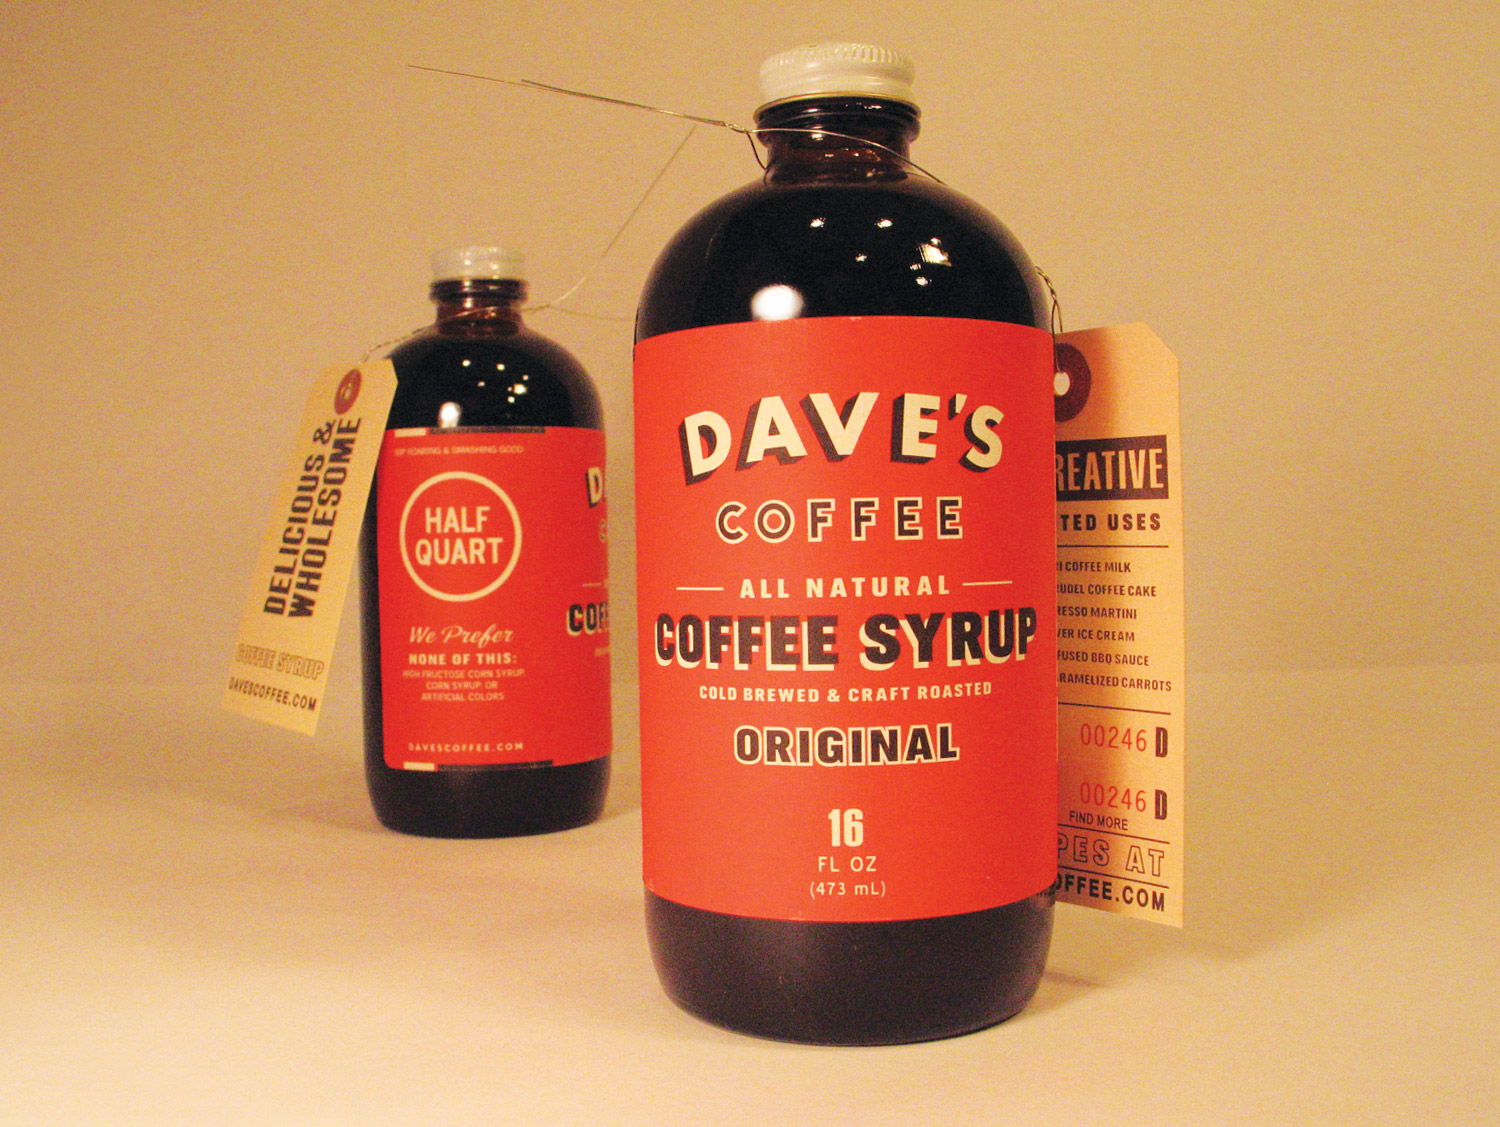 Daves-Coffee-Syrup-Packaging-07.jpg